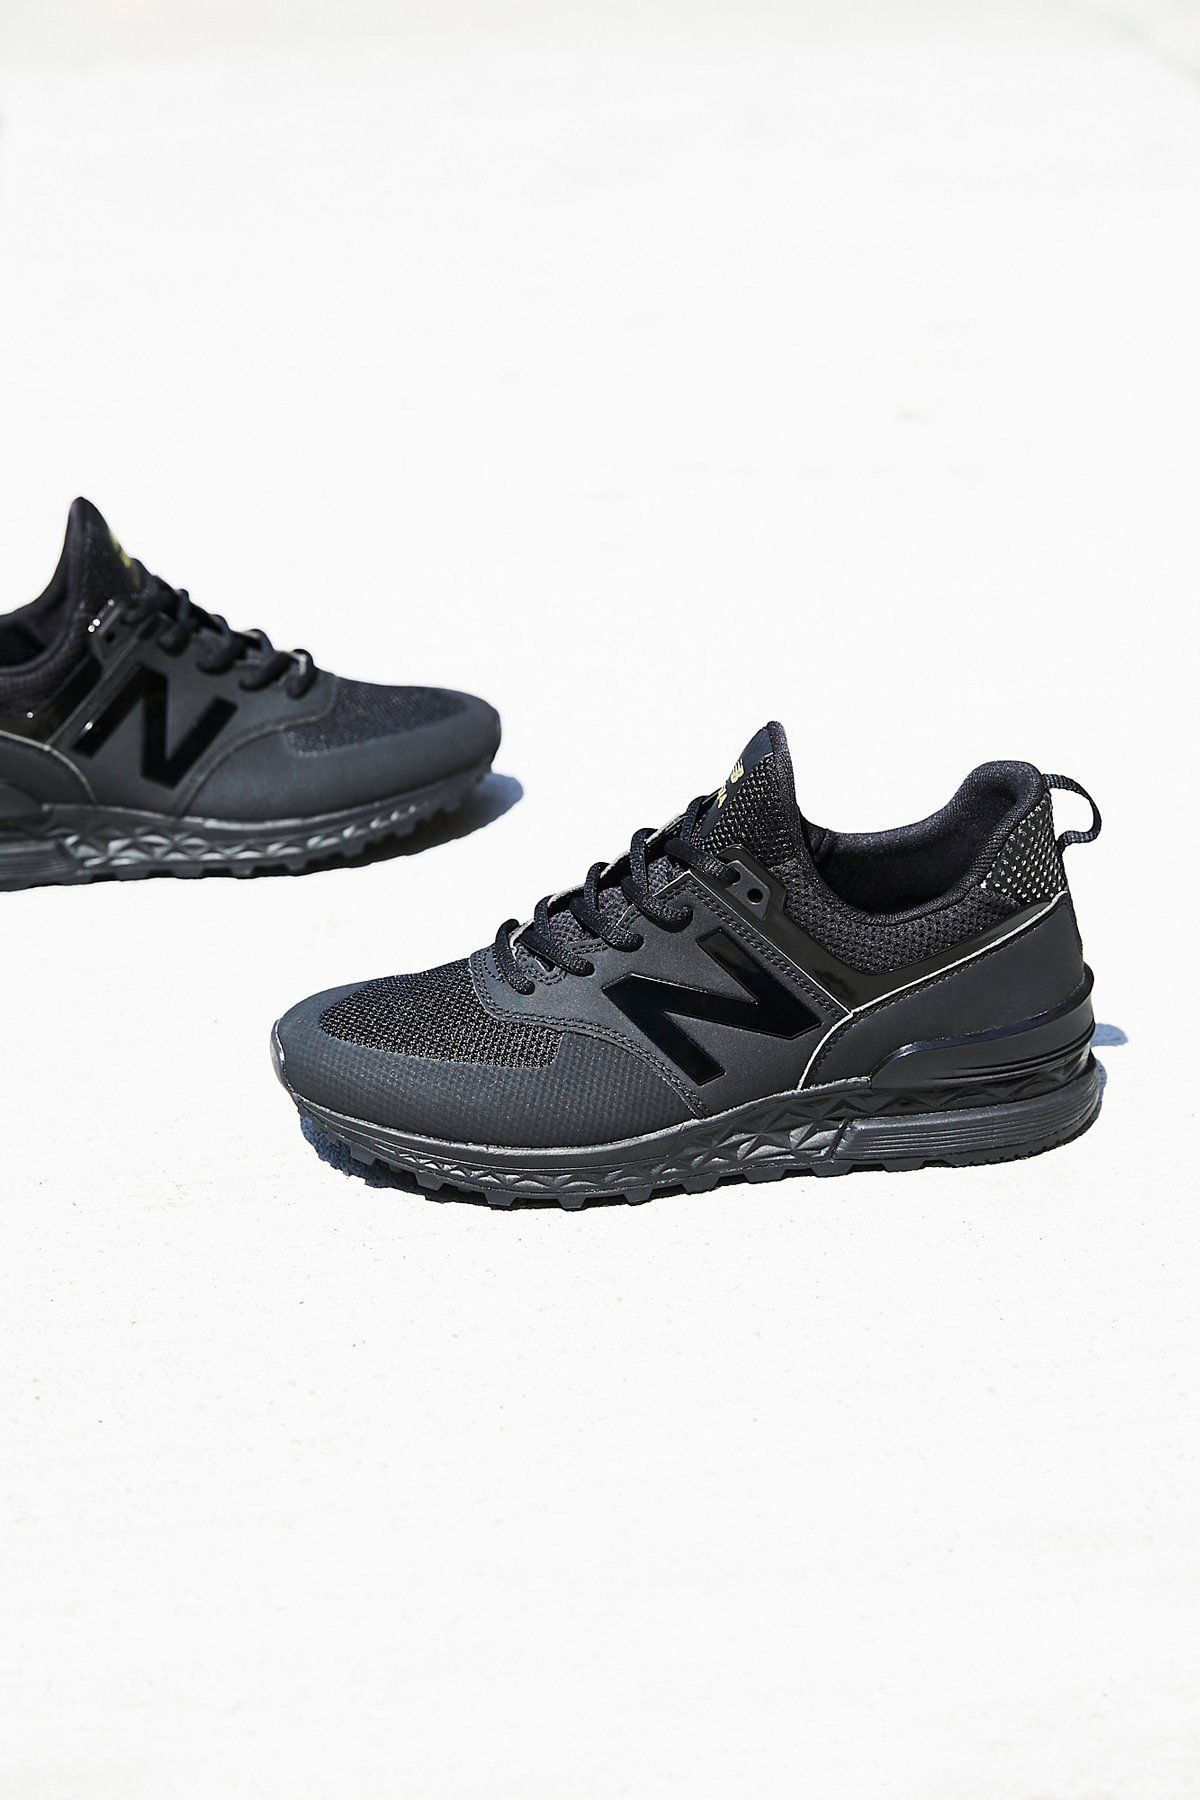 574 Sport Sneaker Sneakers, Fall shoes, Summer shoes